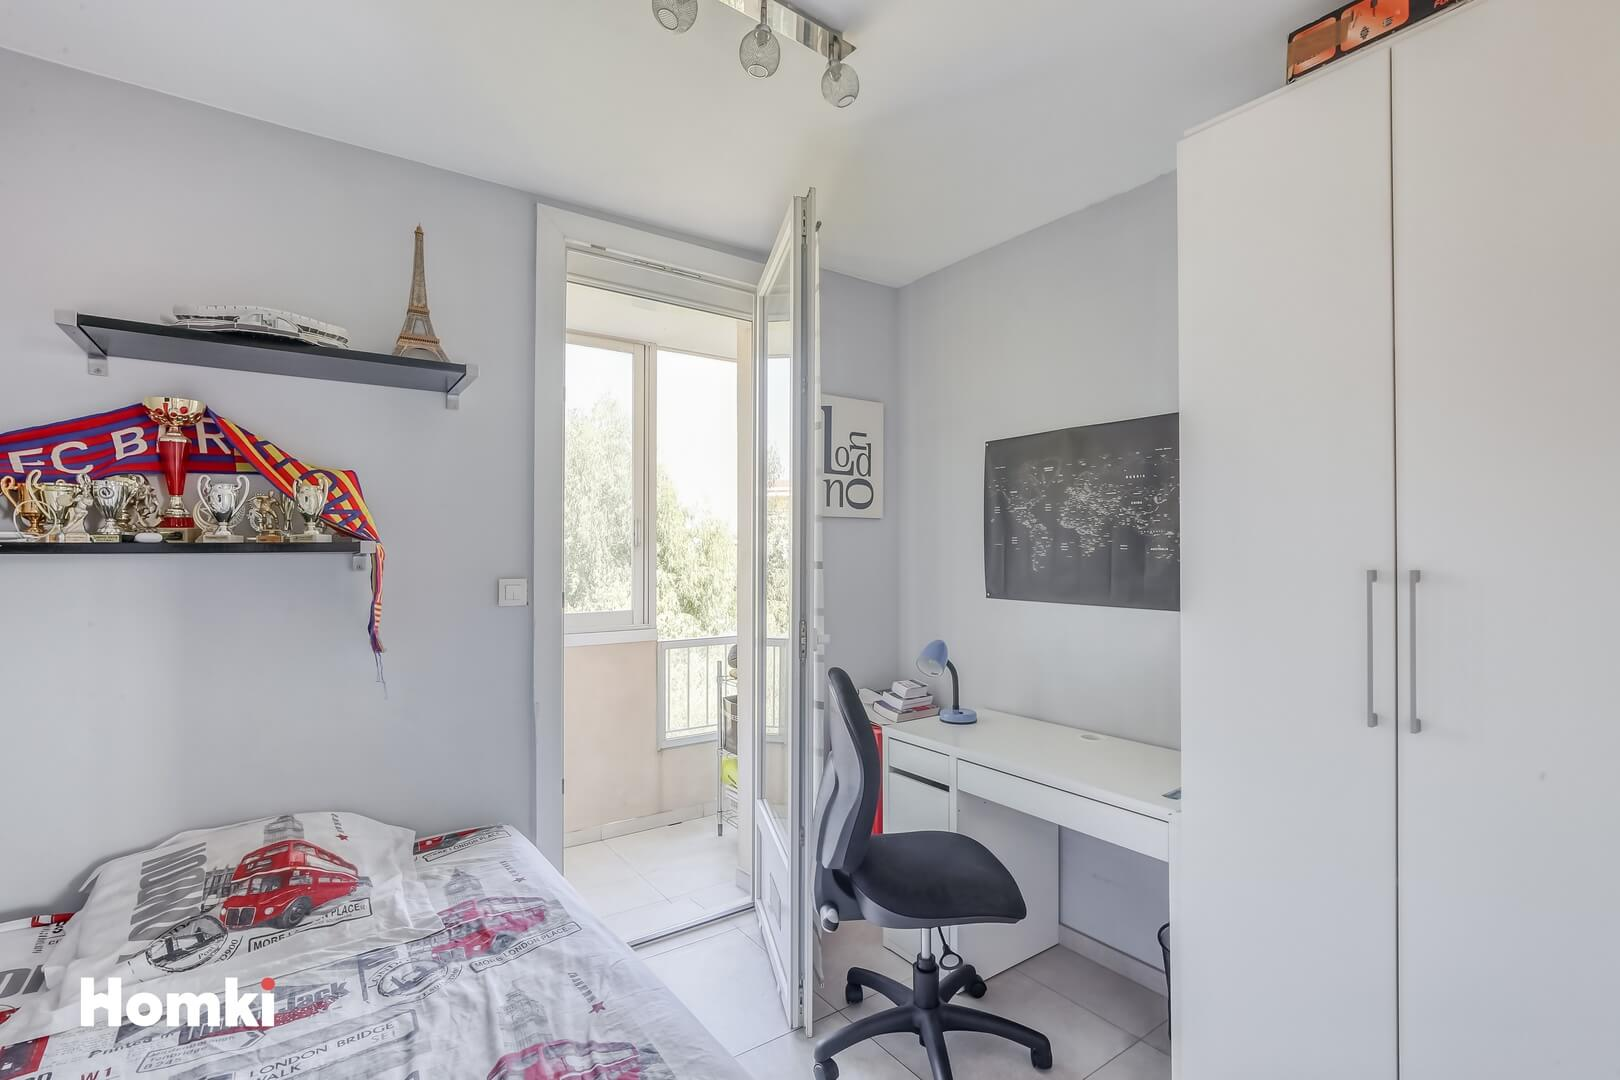 Homki - Vente Appartement  de 76.81 m² à Antibes 06600